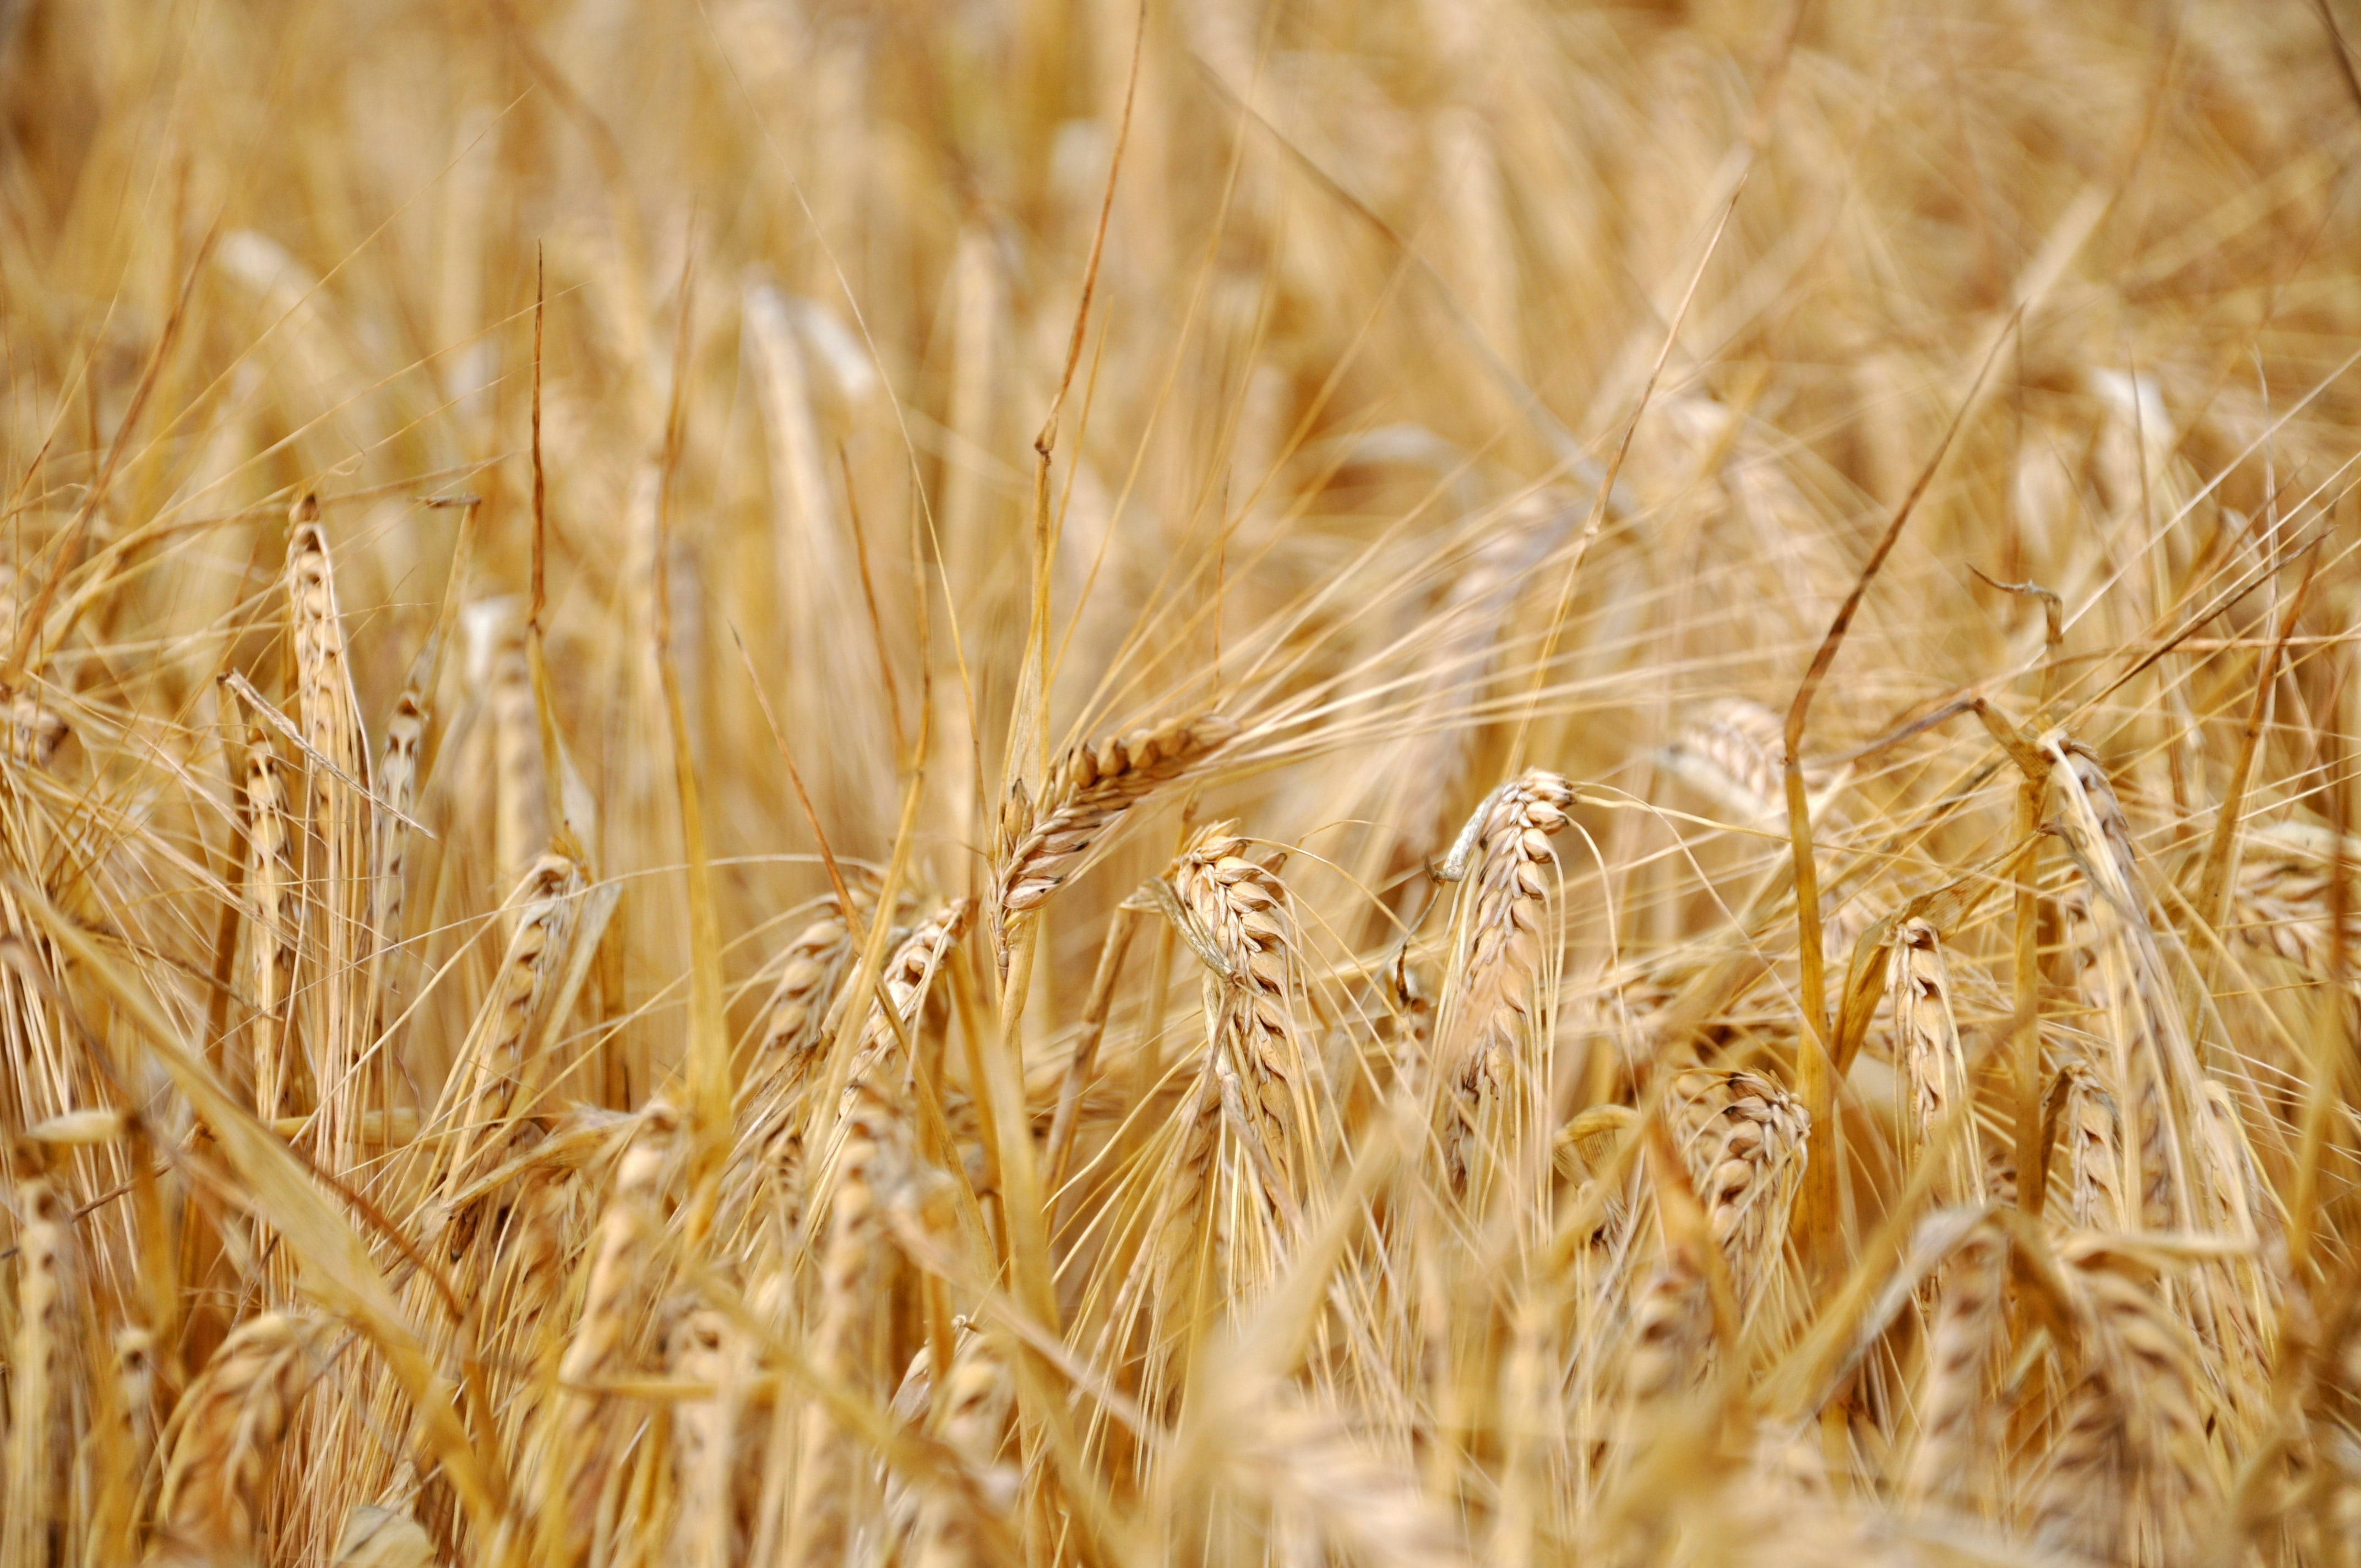 Golden ears of barley in a field